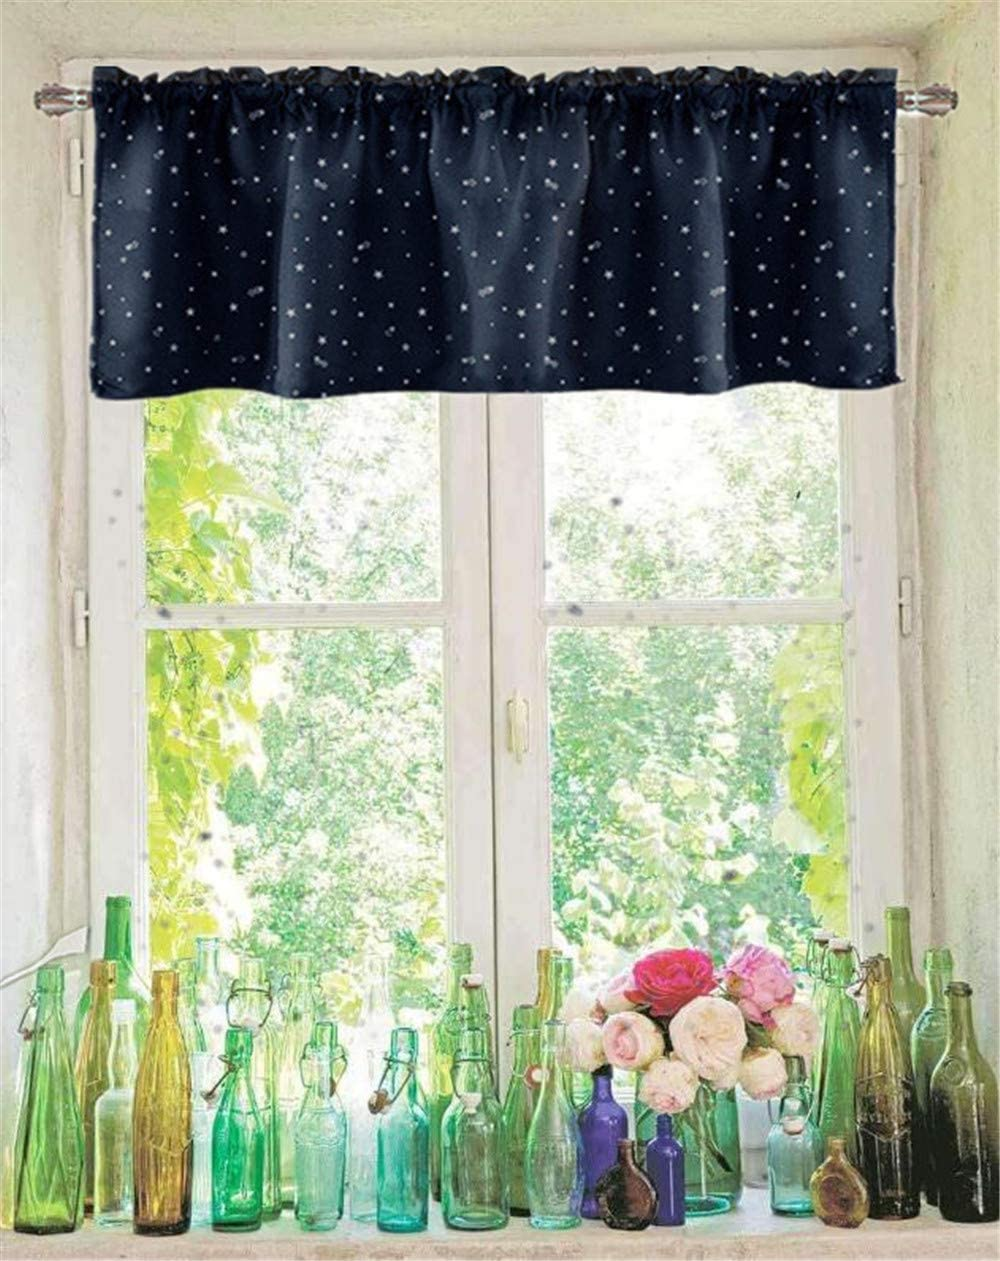 WPKIRA Kitchen Valance Short Curtains for Bath Room Solid Sheer Curtains 21 Inch Length Rod Pocket Top Window Treatment Panel for Small Window Yellow, 2 Panels Per Package,39 Width x 21 Length